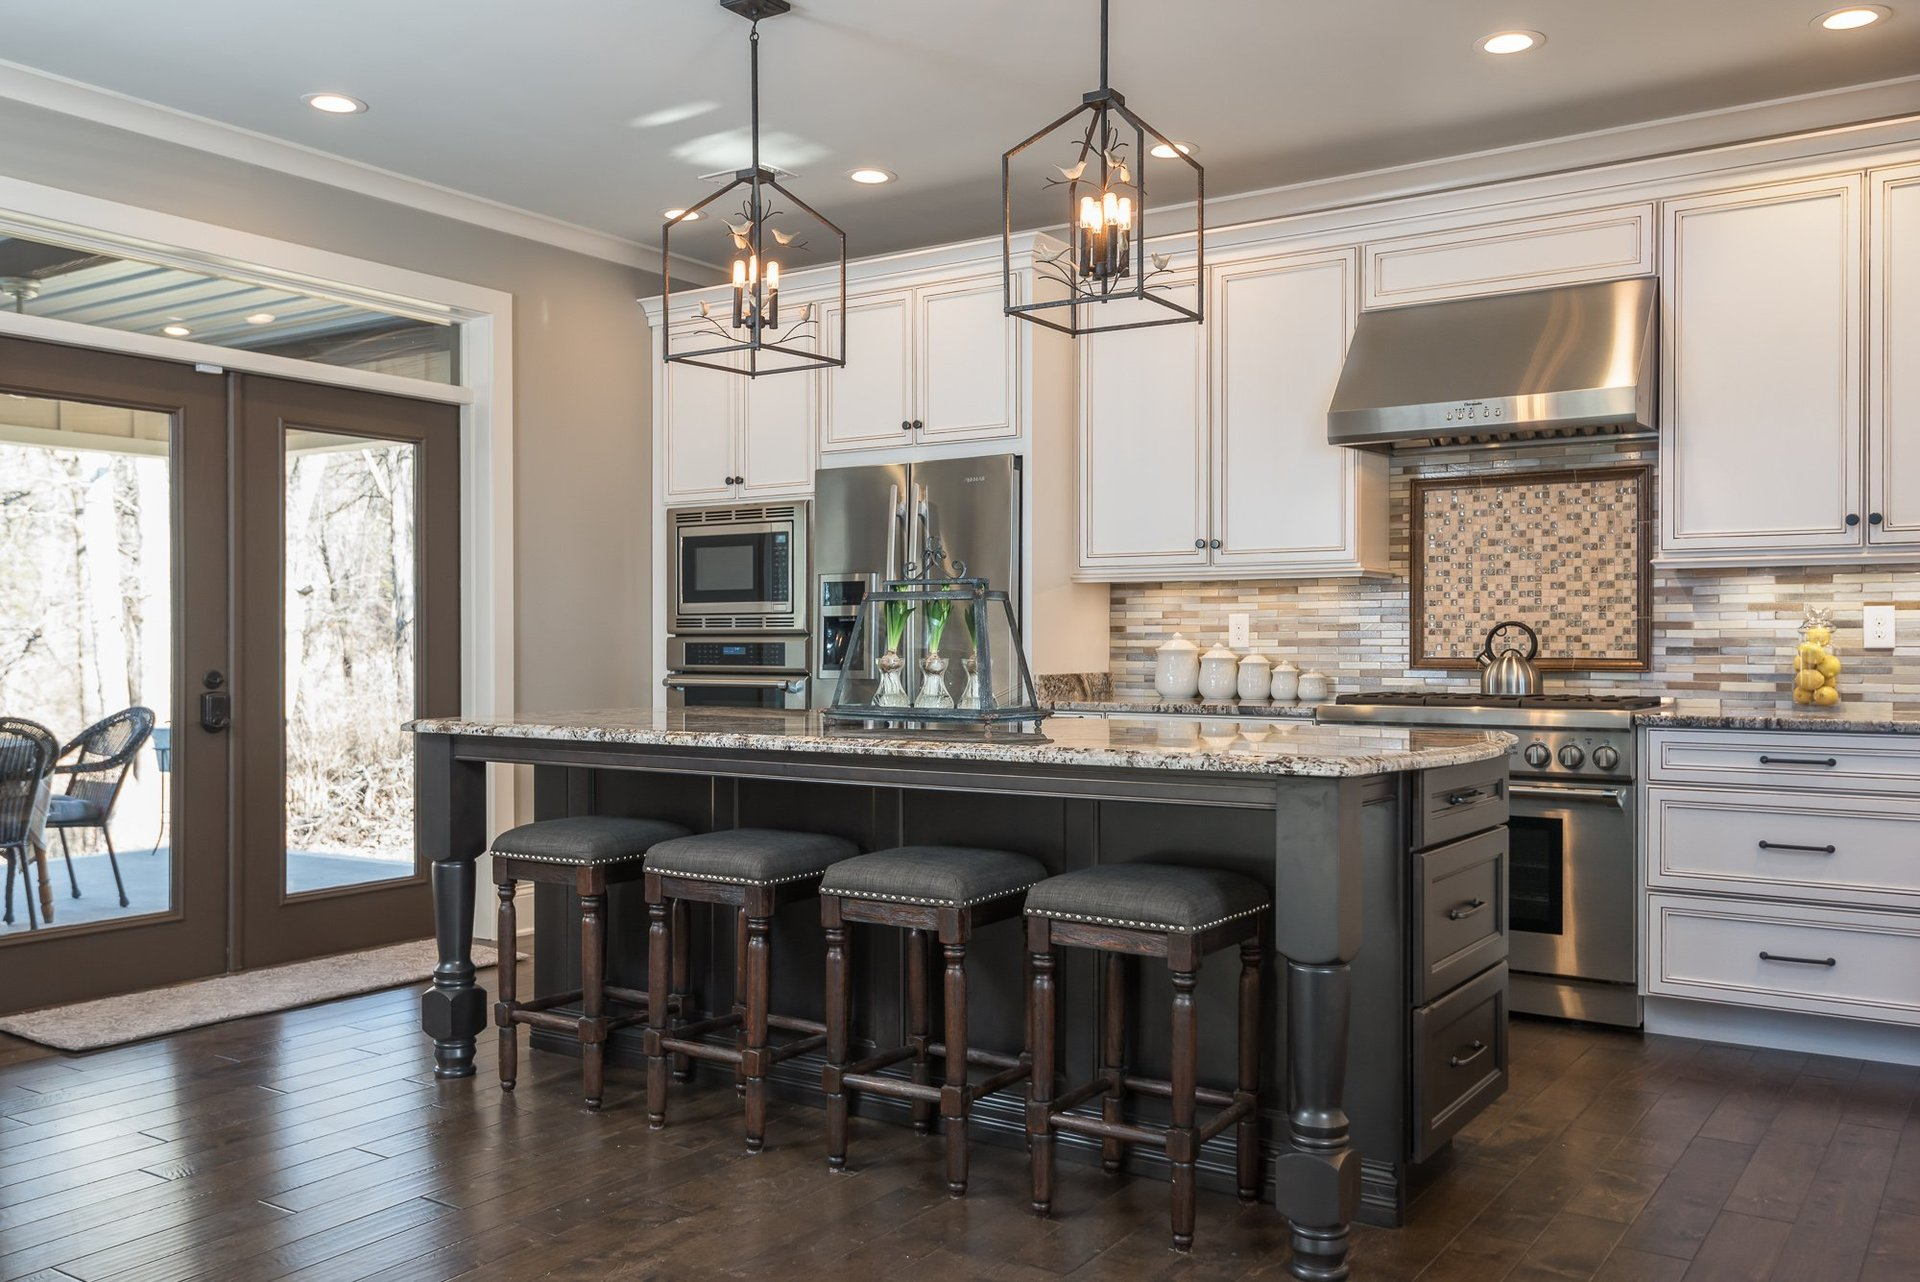 Kitchens Remodeling General Contractors In Lexington Ky